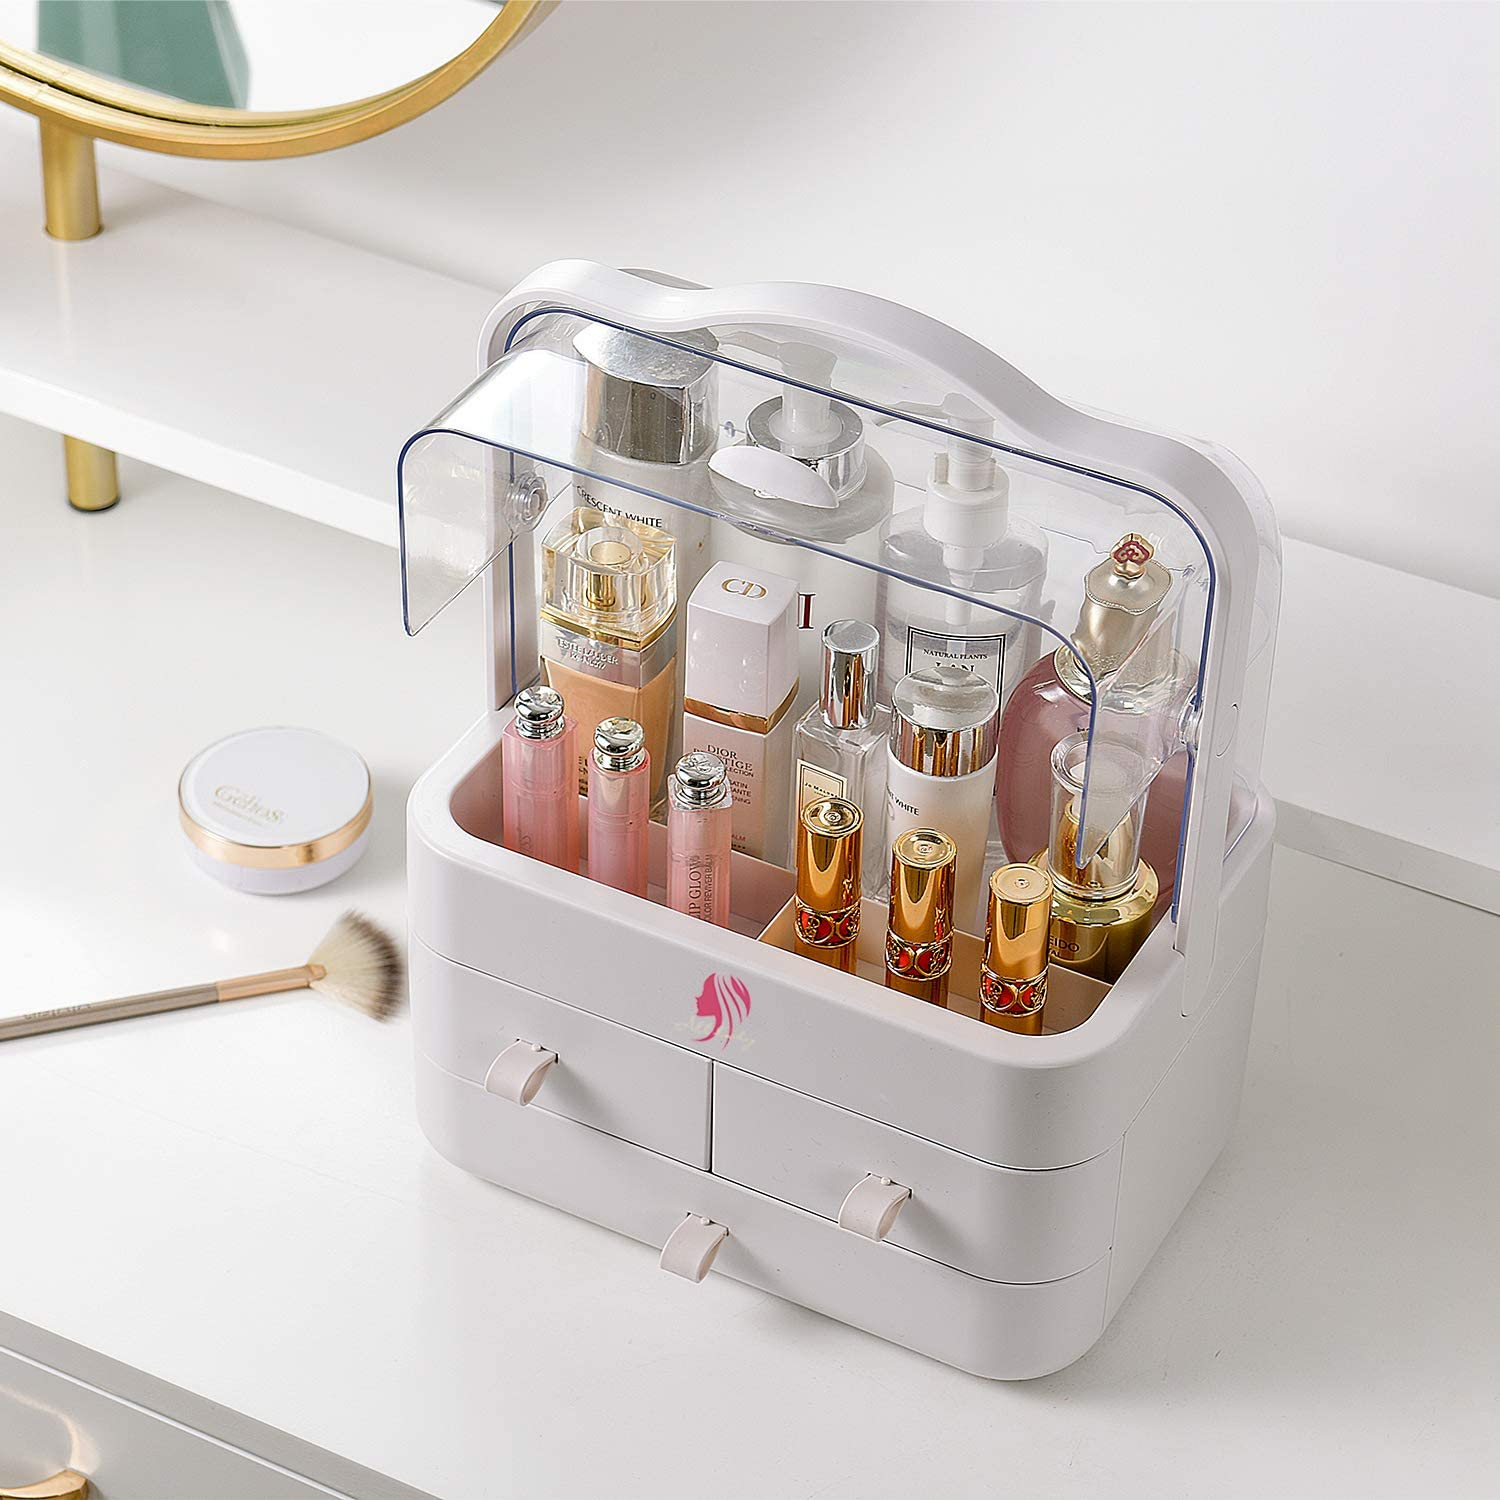 Clear Cosmetic Storage Organizer - Cosmetic Display Cases, Jewelry and Hair Accessories. Looks Elegant Sitting on Your Vanity, Bathroom Counter or Dresser. Clear Design for Easy Visibility (White): Home Improvement